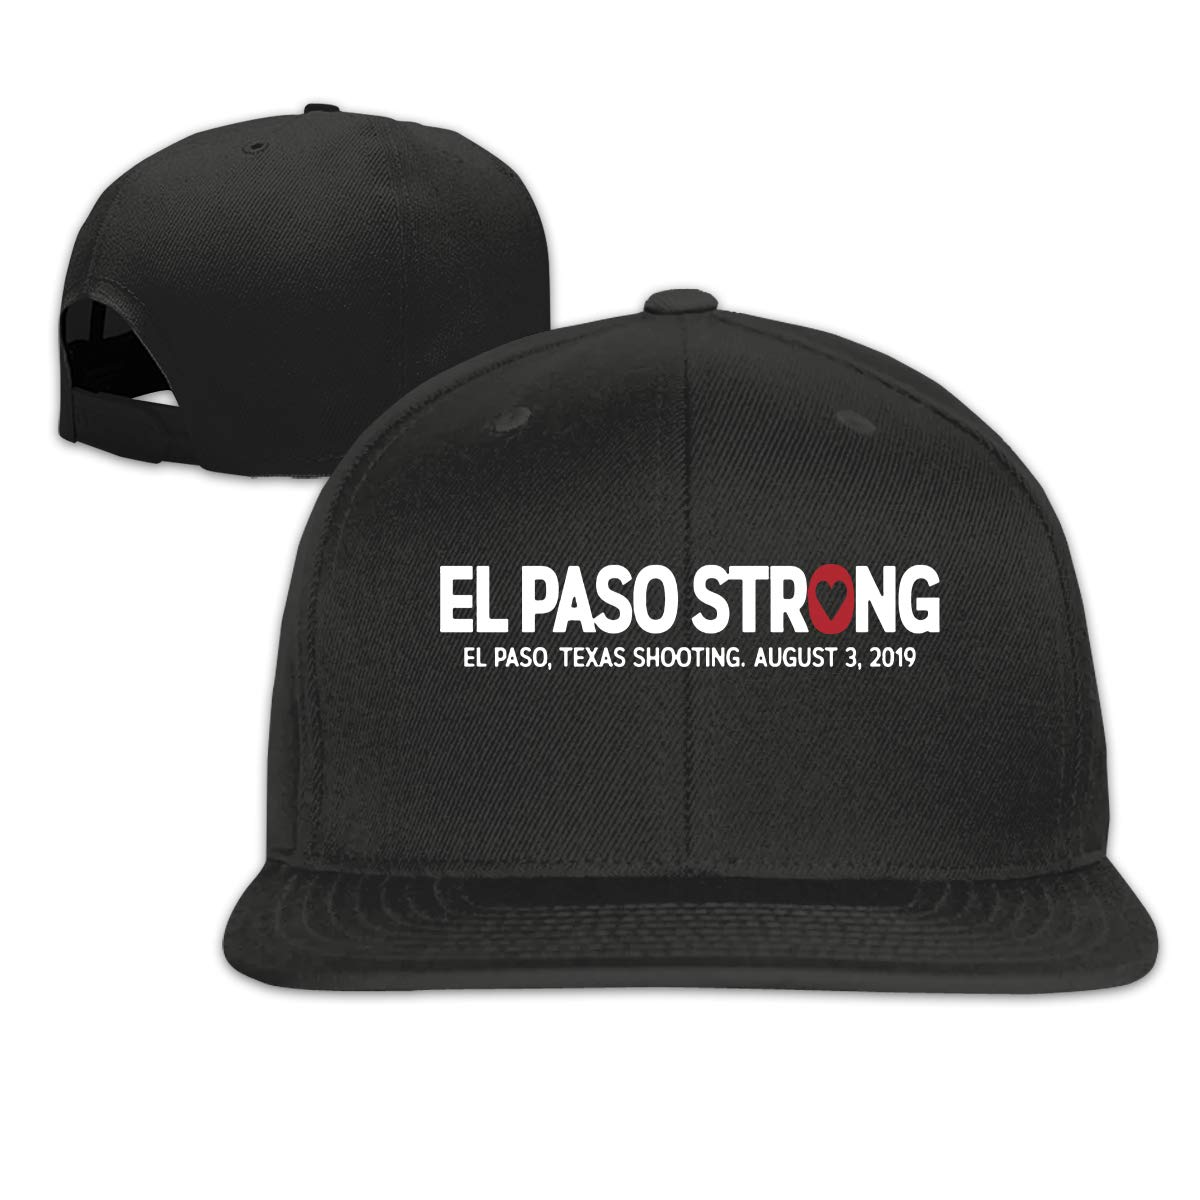 El Paso Strong Unisex Adult Hats Classic Baseball Caps Sports Hat Peaked Cap